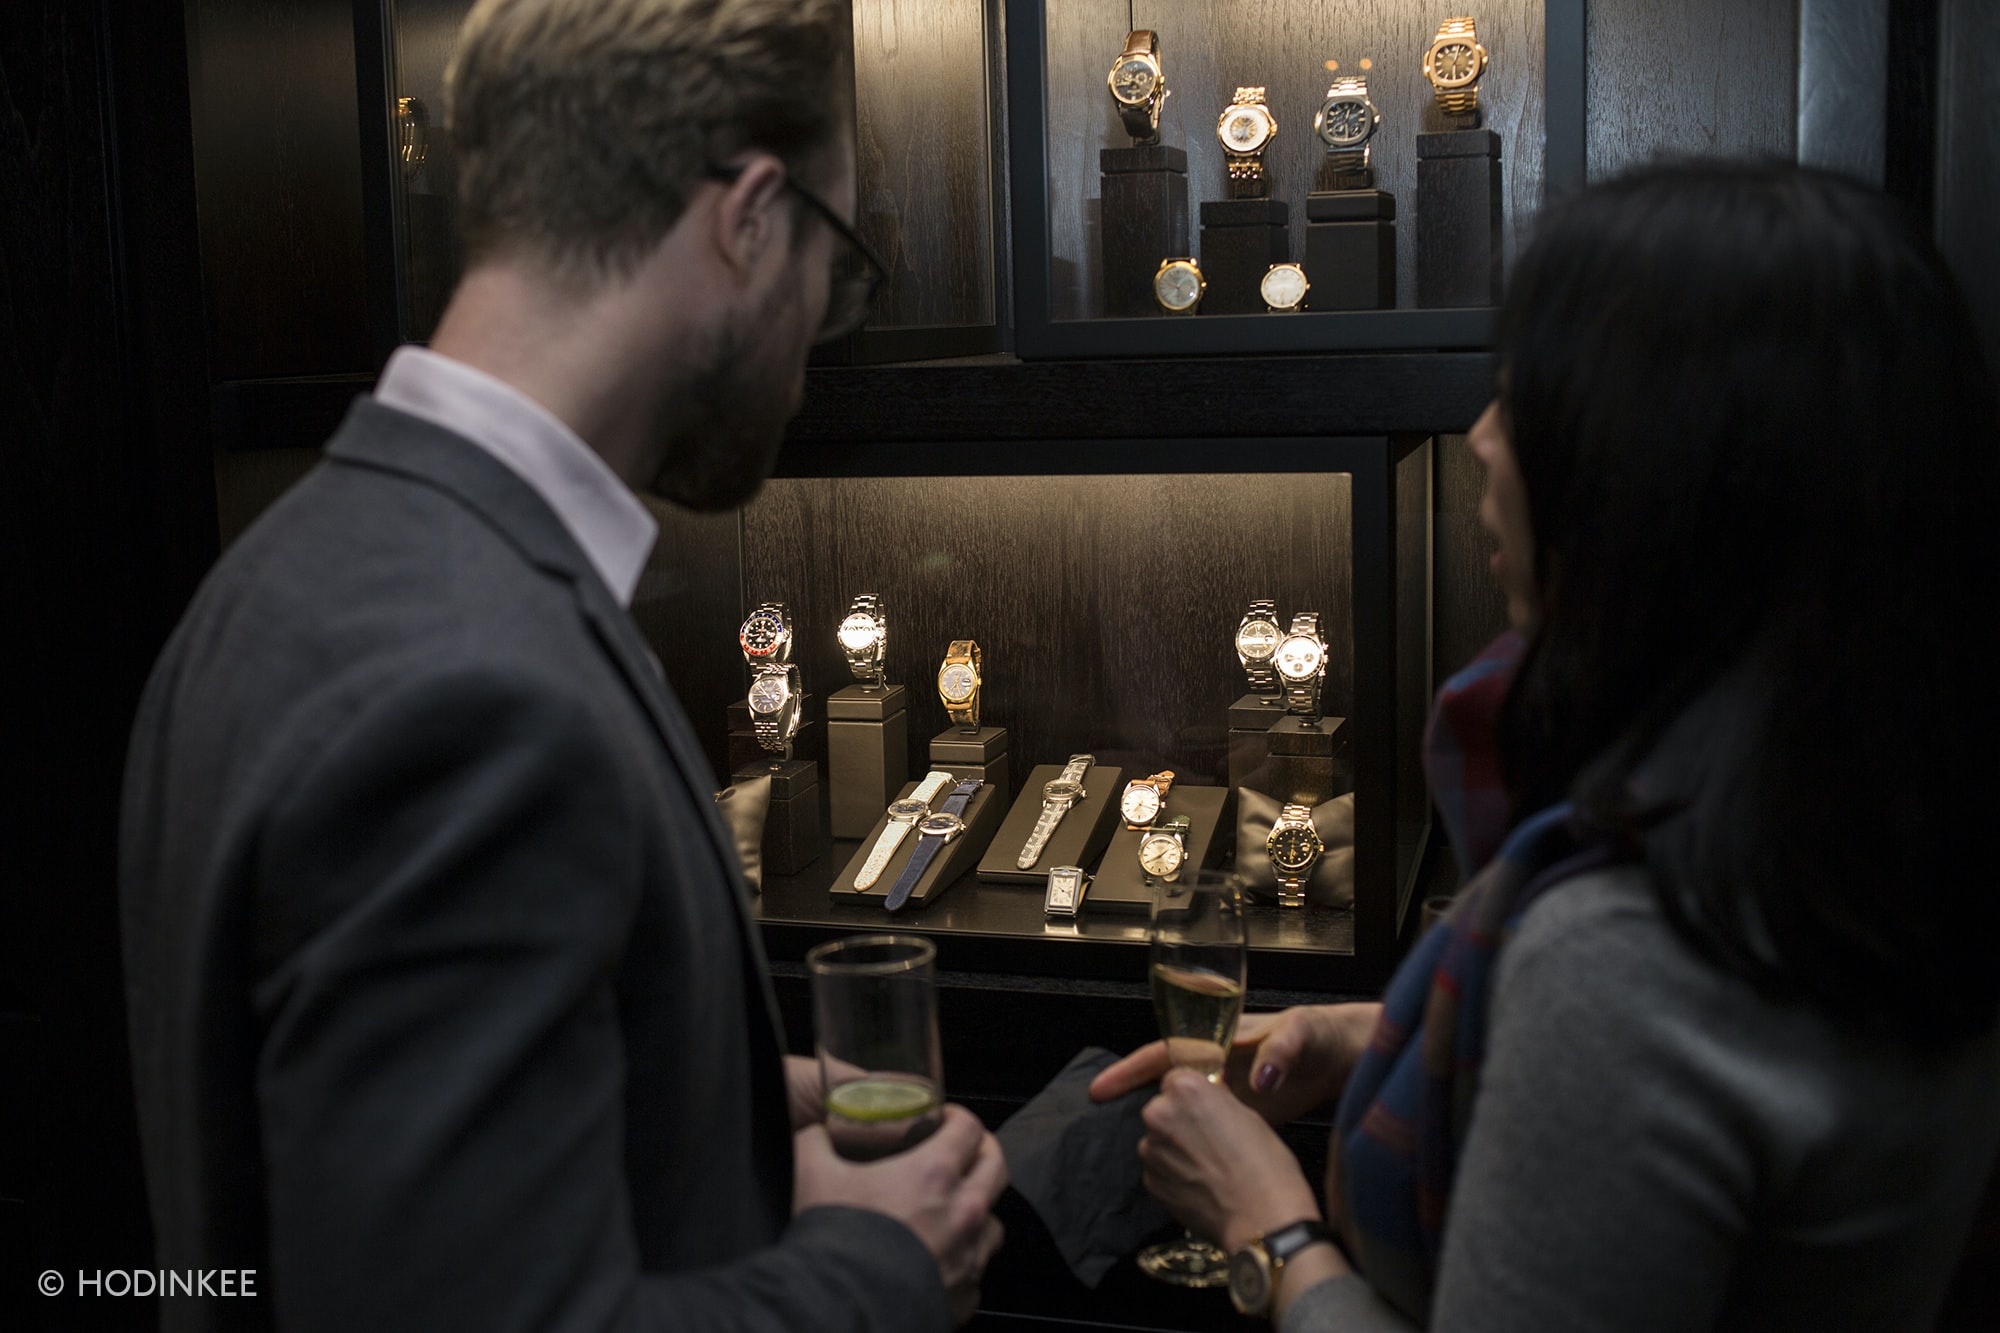 Photo Report: The HODINKEE Ladies' Collection At Material Good Photo Report: The HODINKEE Ladies' Collection At Material Good 20015234 copy